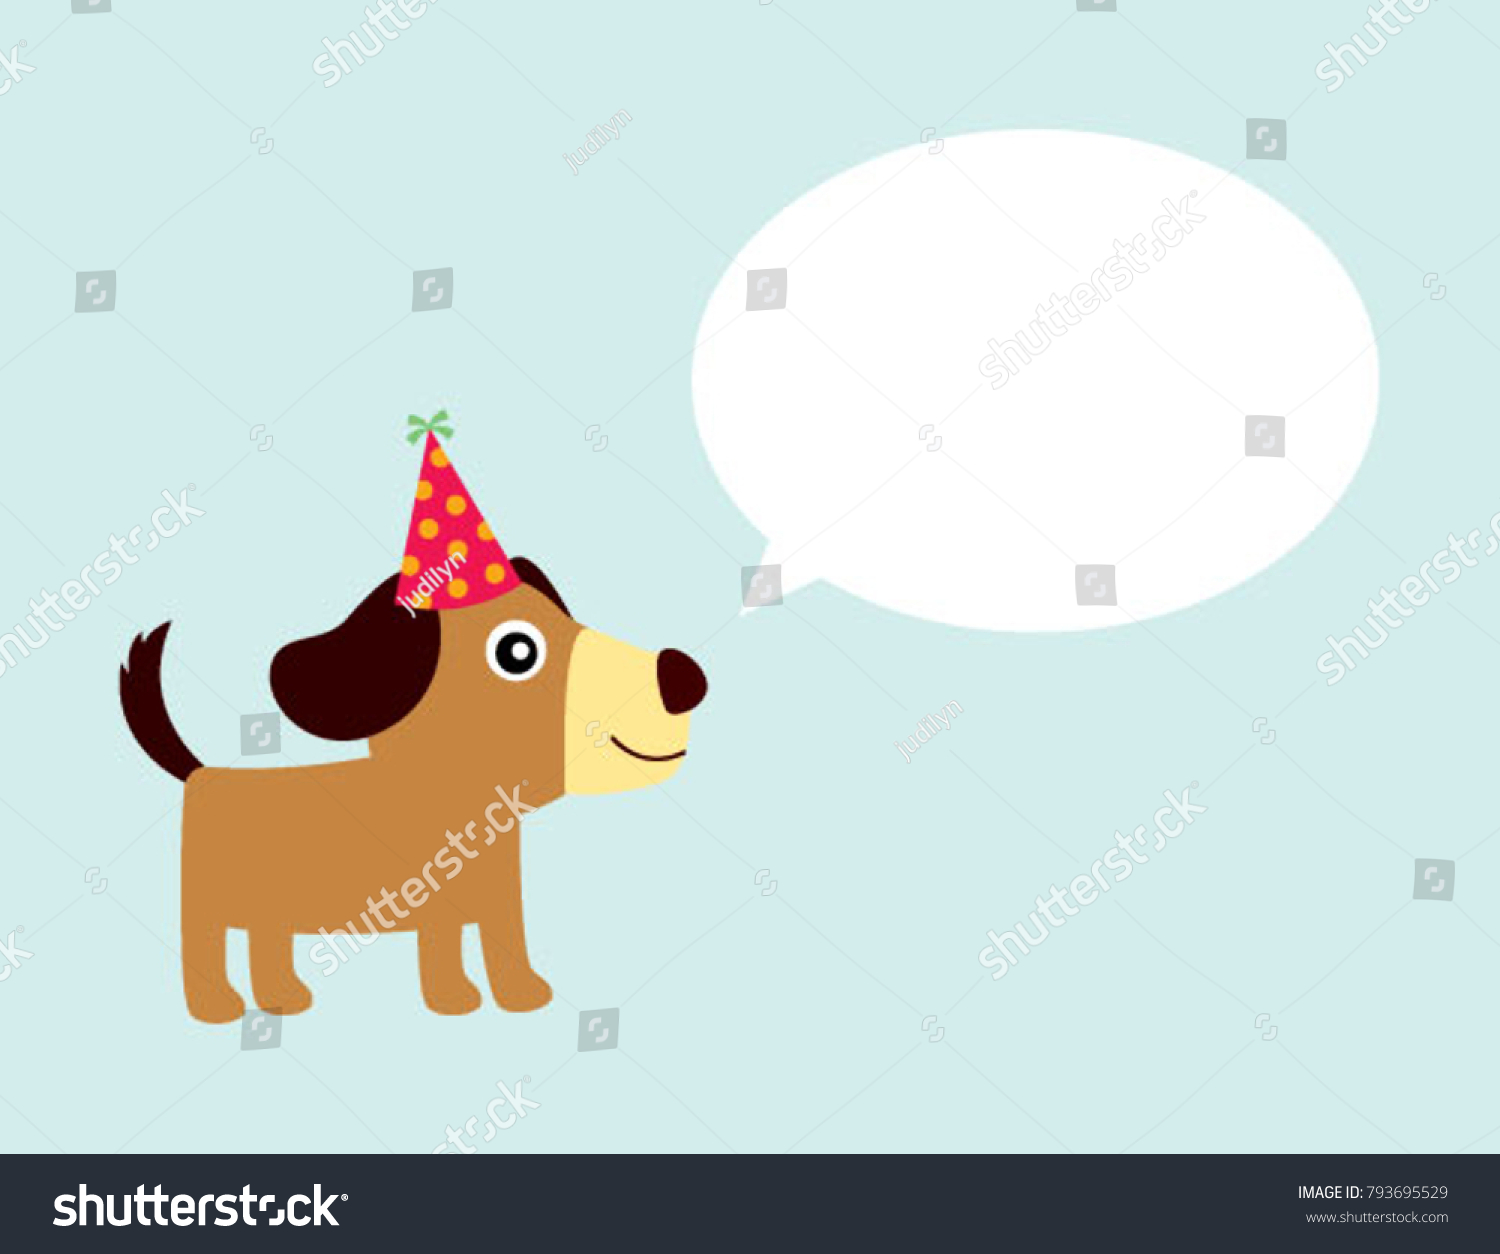 Cute puppy dog birthday greeting card stock vector 793695529 cute puppy dog birthday greeting card vector kristyandbryce Choice Image